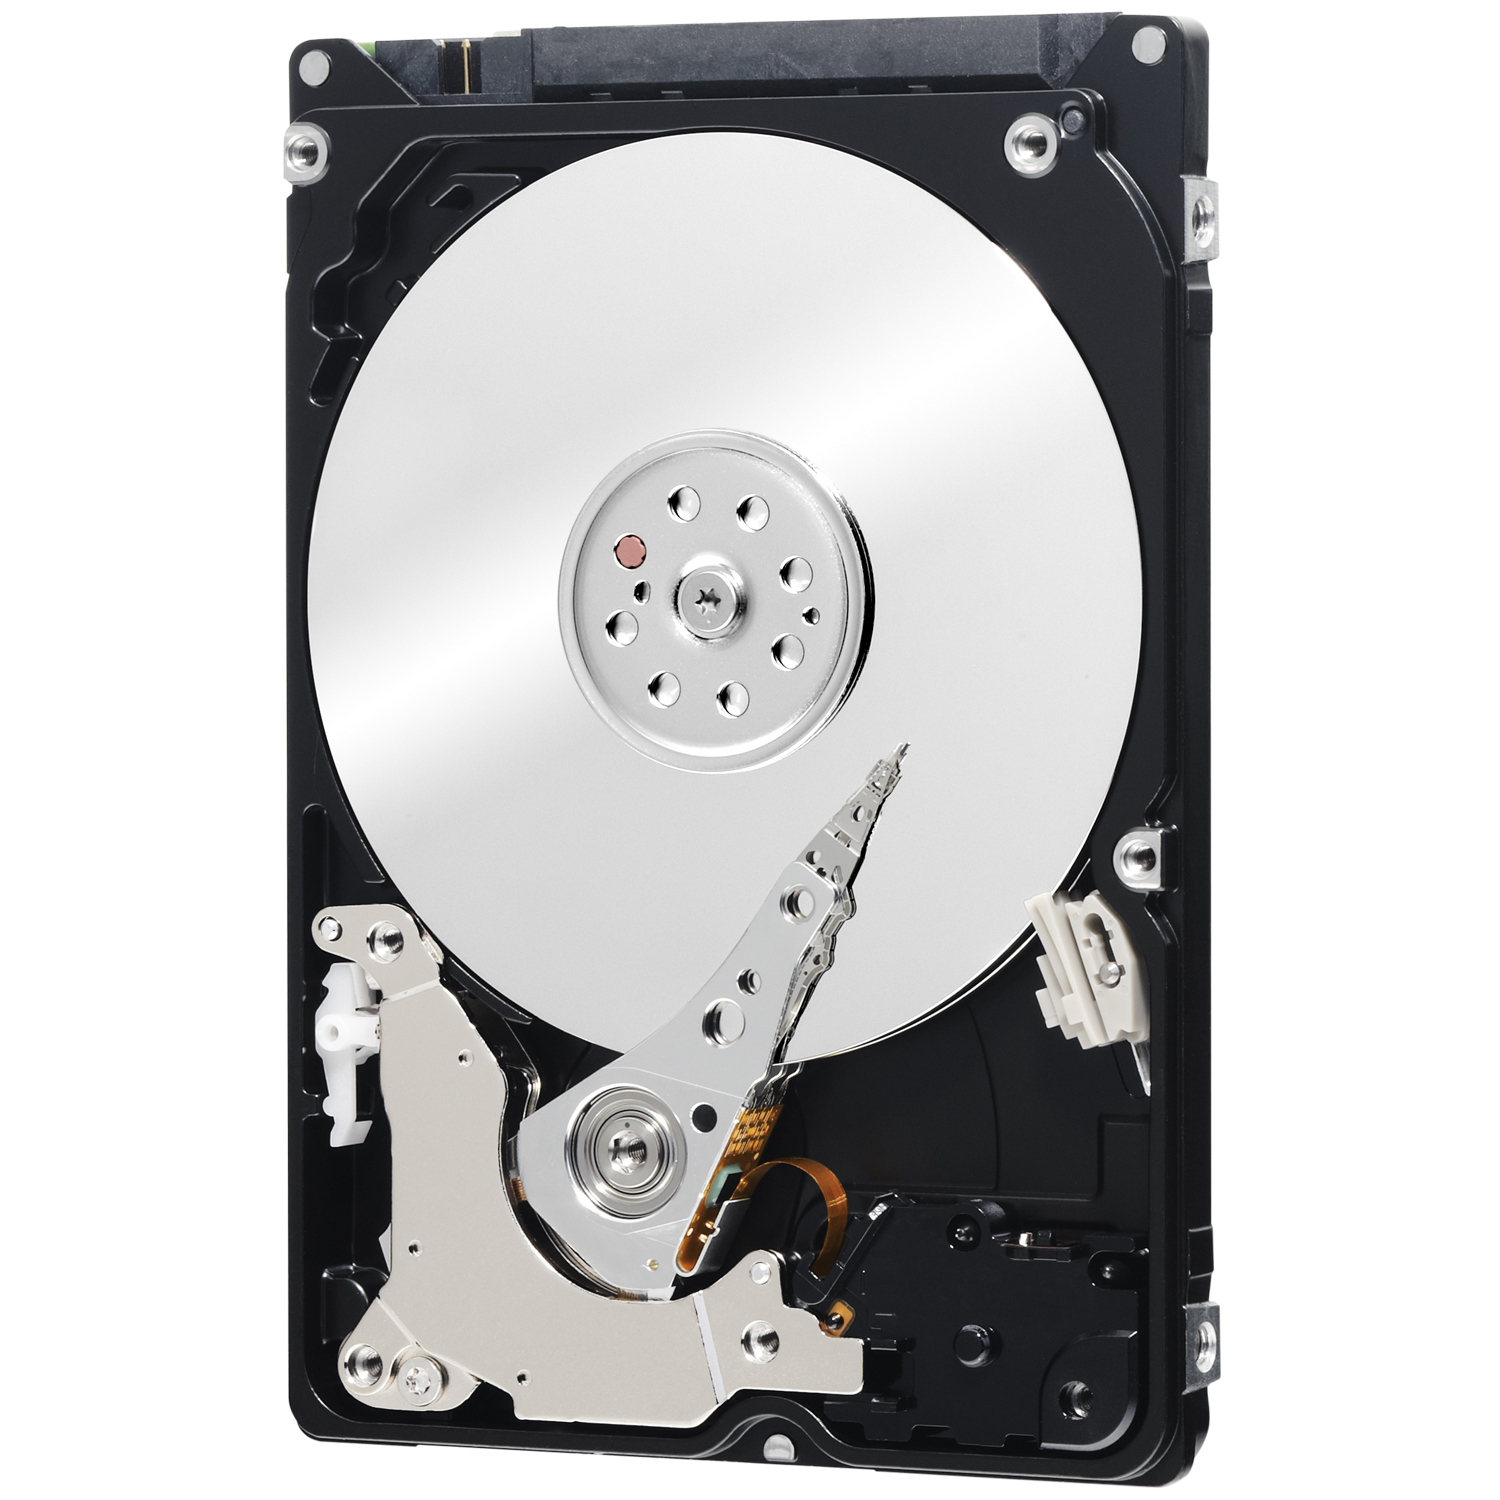 WESTERN DIGITAL 320GB SATA 6GB/S HDD SERIAL ATA INTERNAL HARD DRIVE